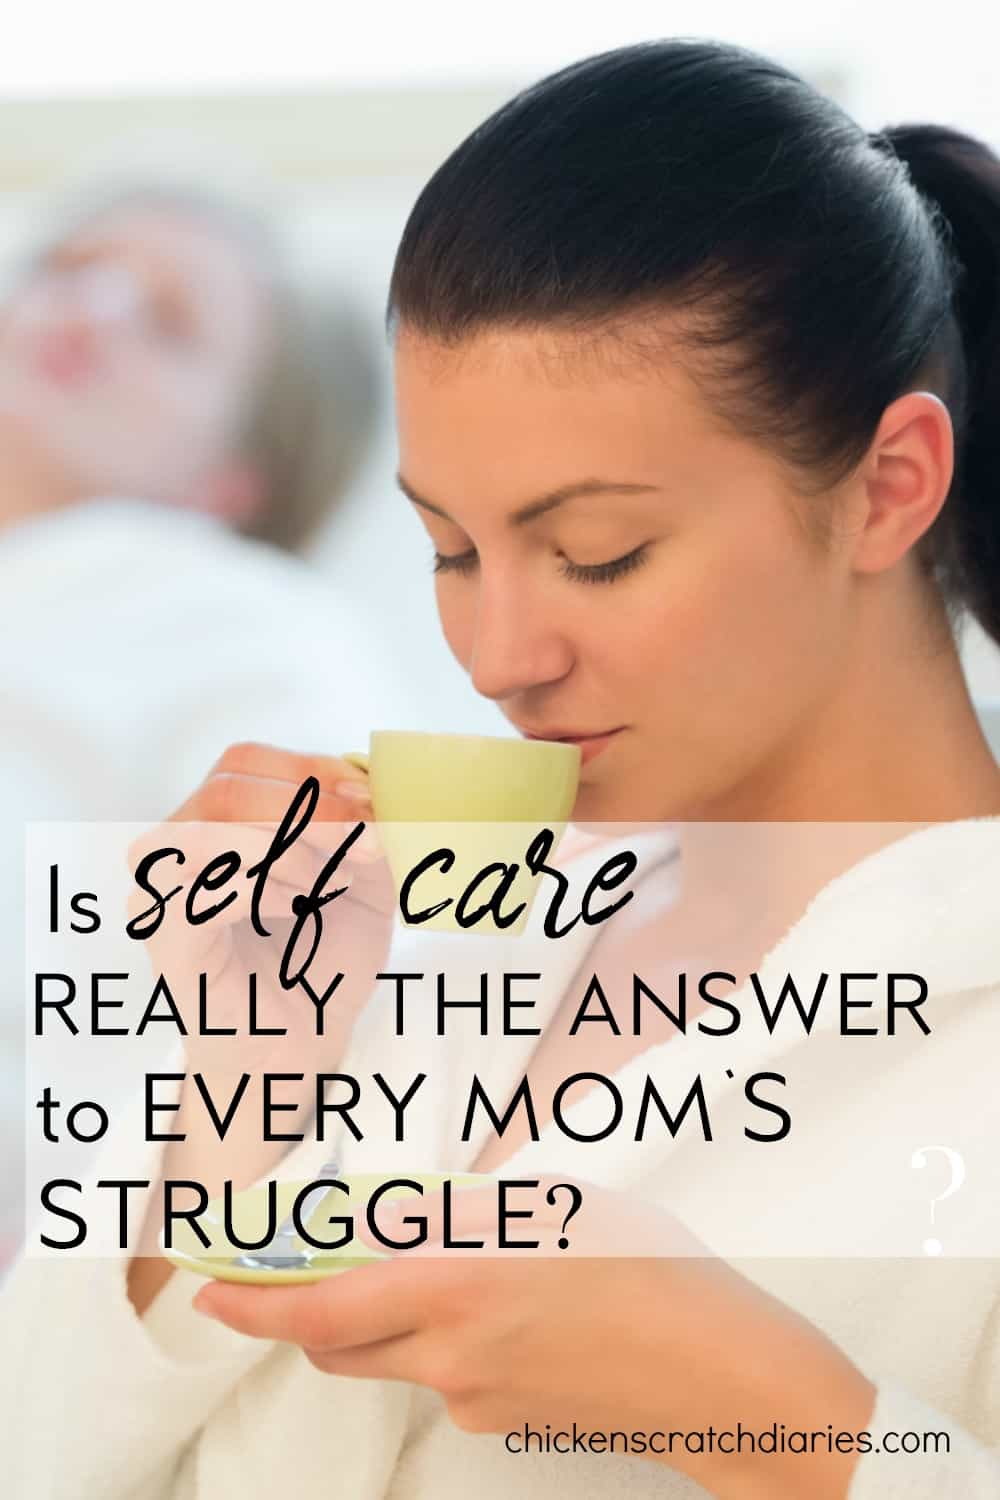 Self care won't solve every problem we face as moms. Here's what you need instead. #SelfCare #Faith #IntentionalLiving #ChristianMom